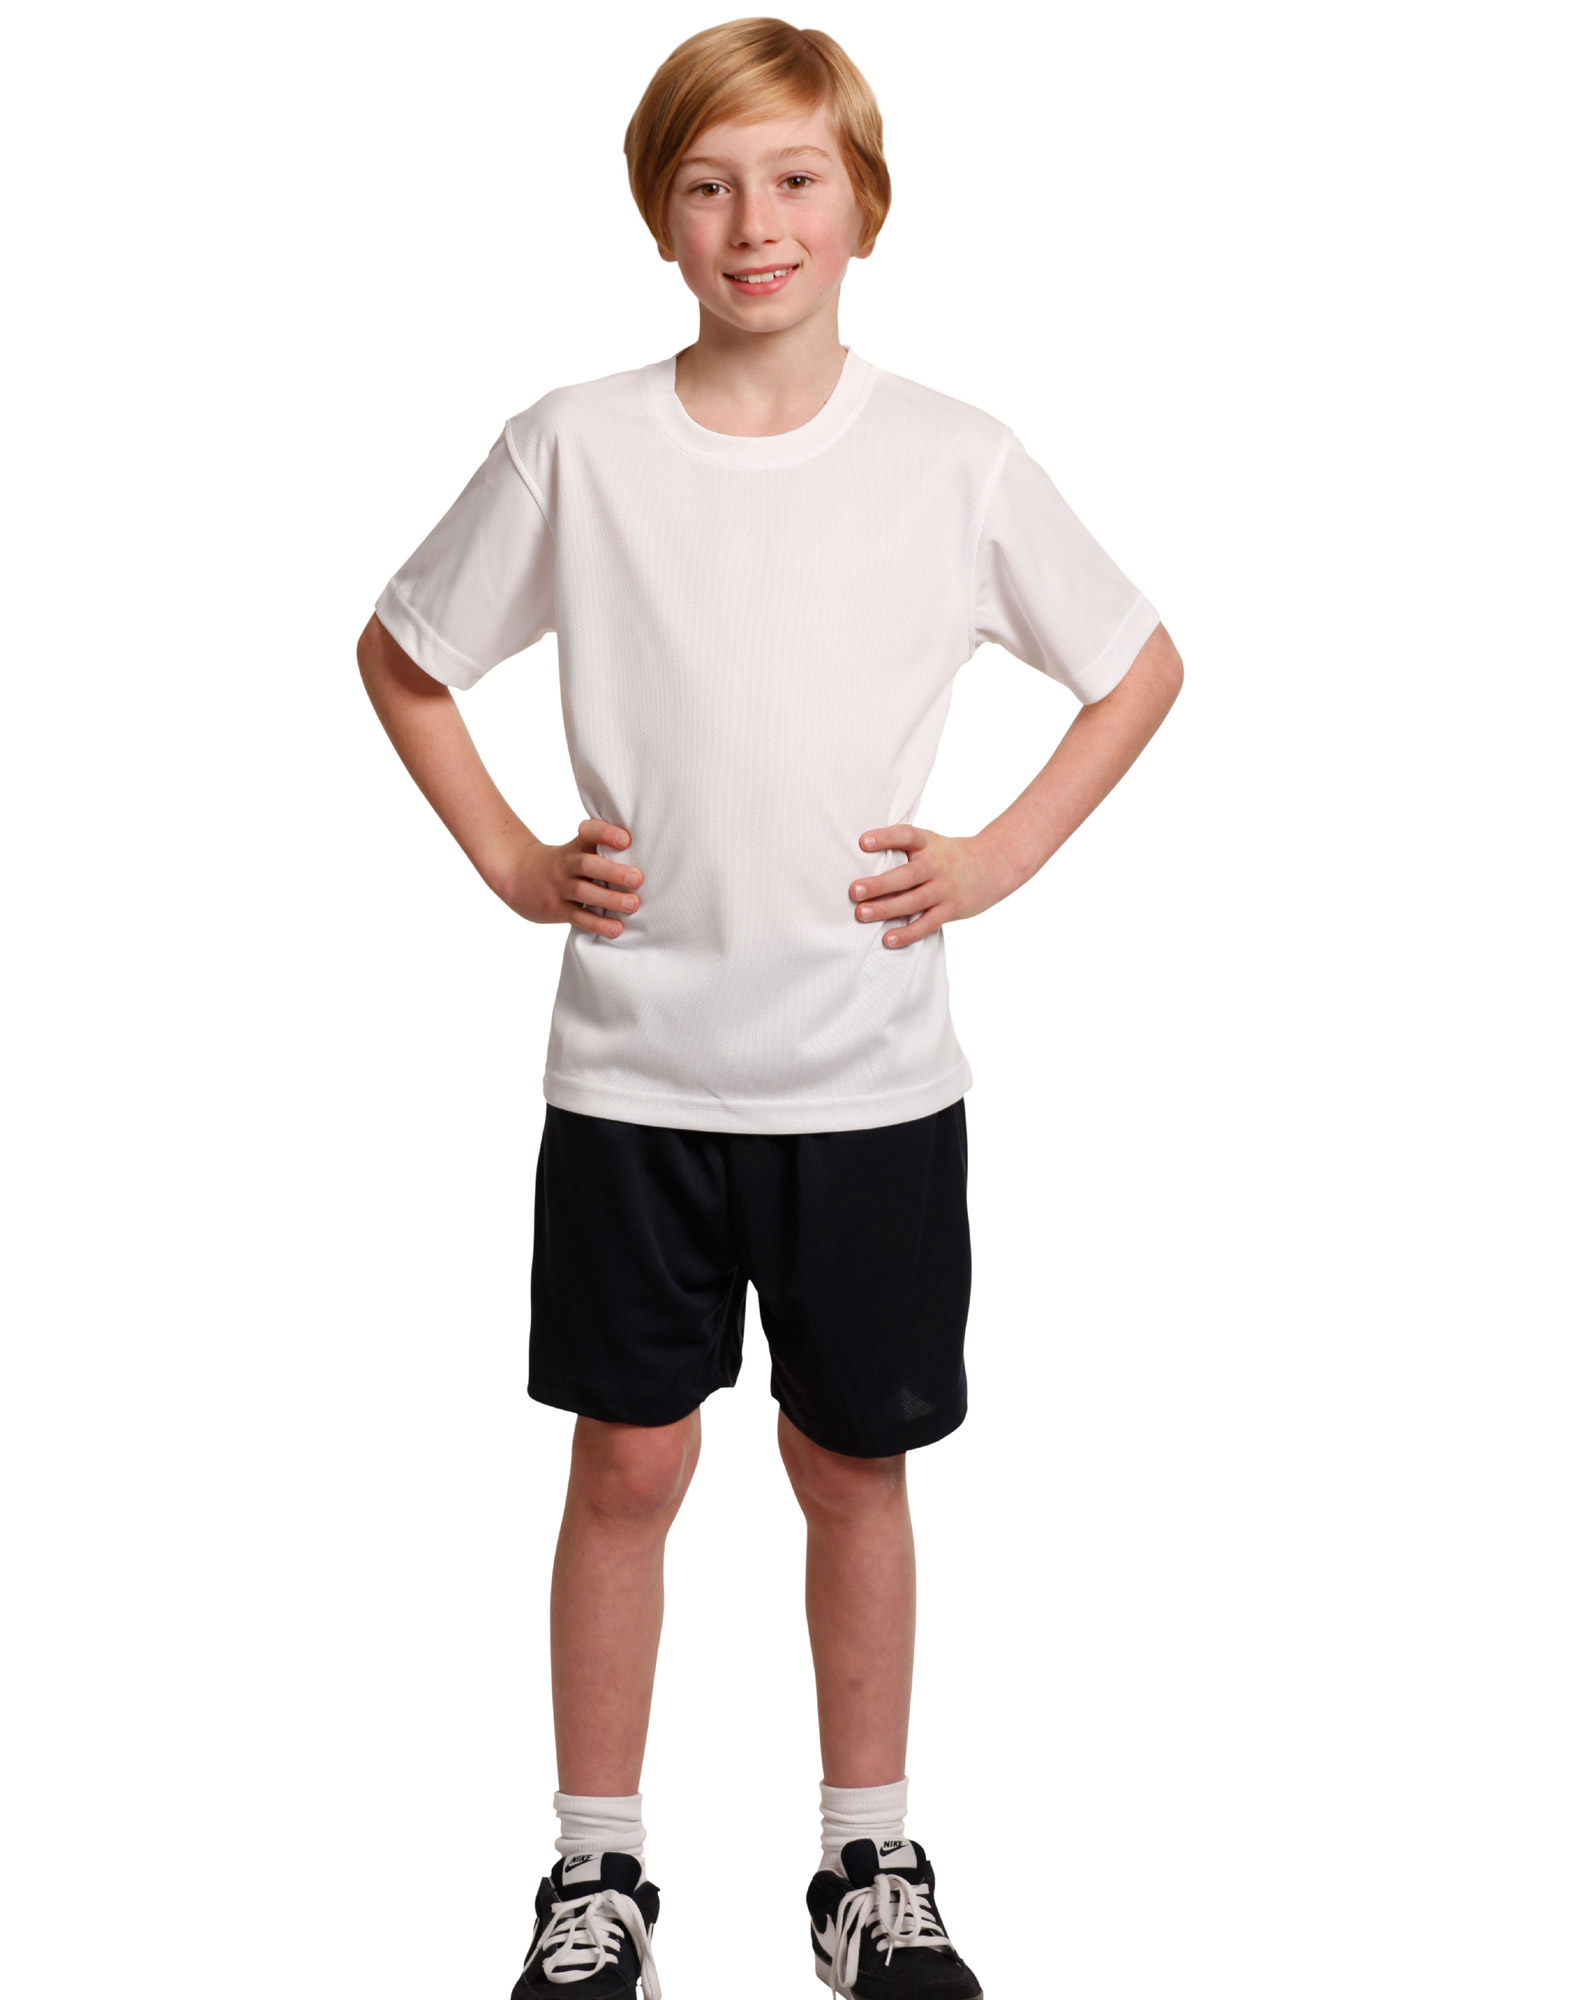 Here are a huge selection of kids shorts suitable for training, running, cycling or more casual wear in the warm weather. We have boys shorts and girls shorts from top brands including Nike, Puma, adidas and many more in this greatly discounted collection.